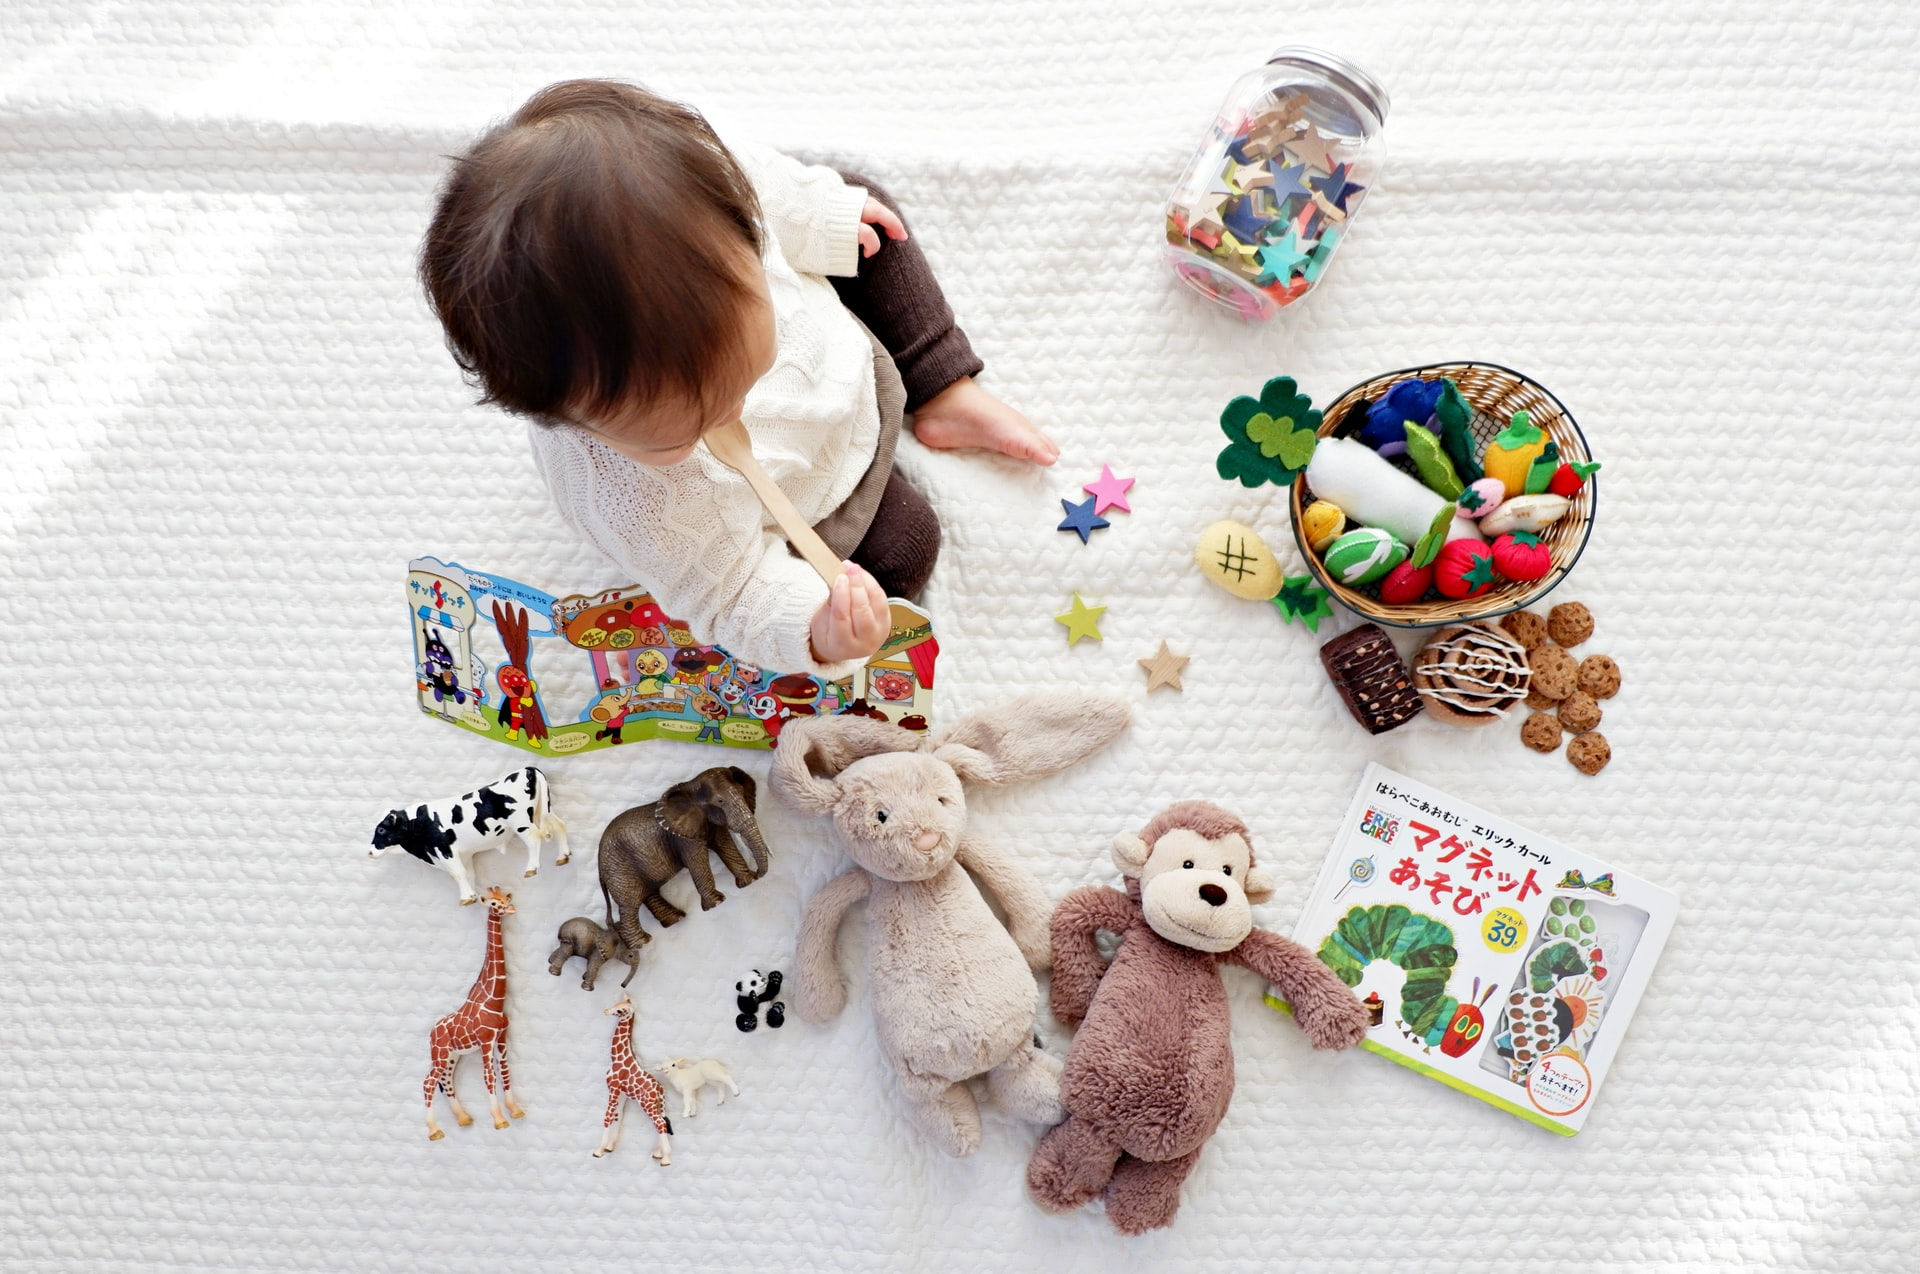 Child sitting on floor playing with toys